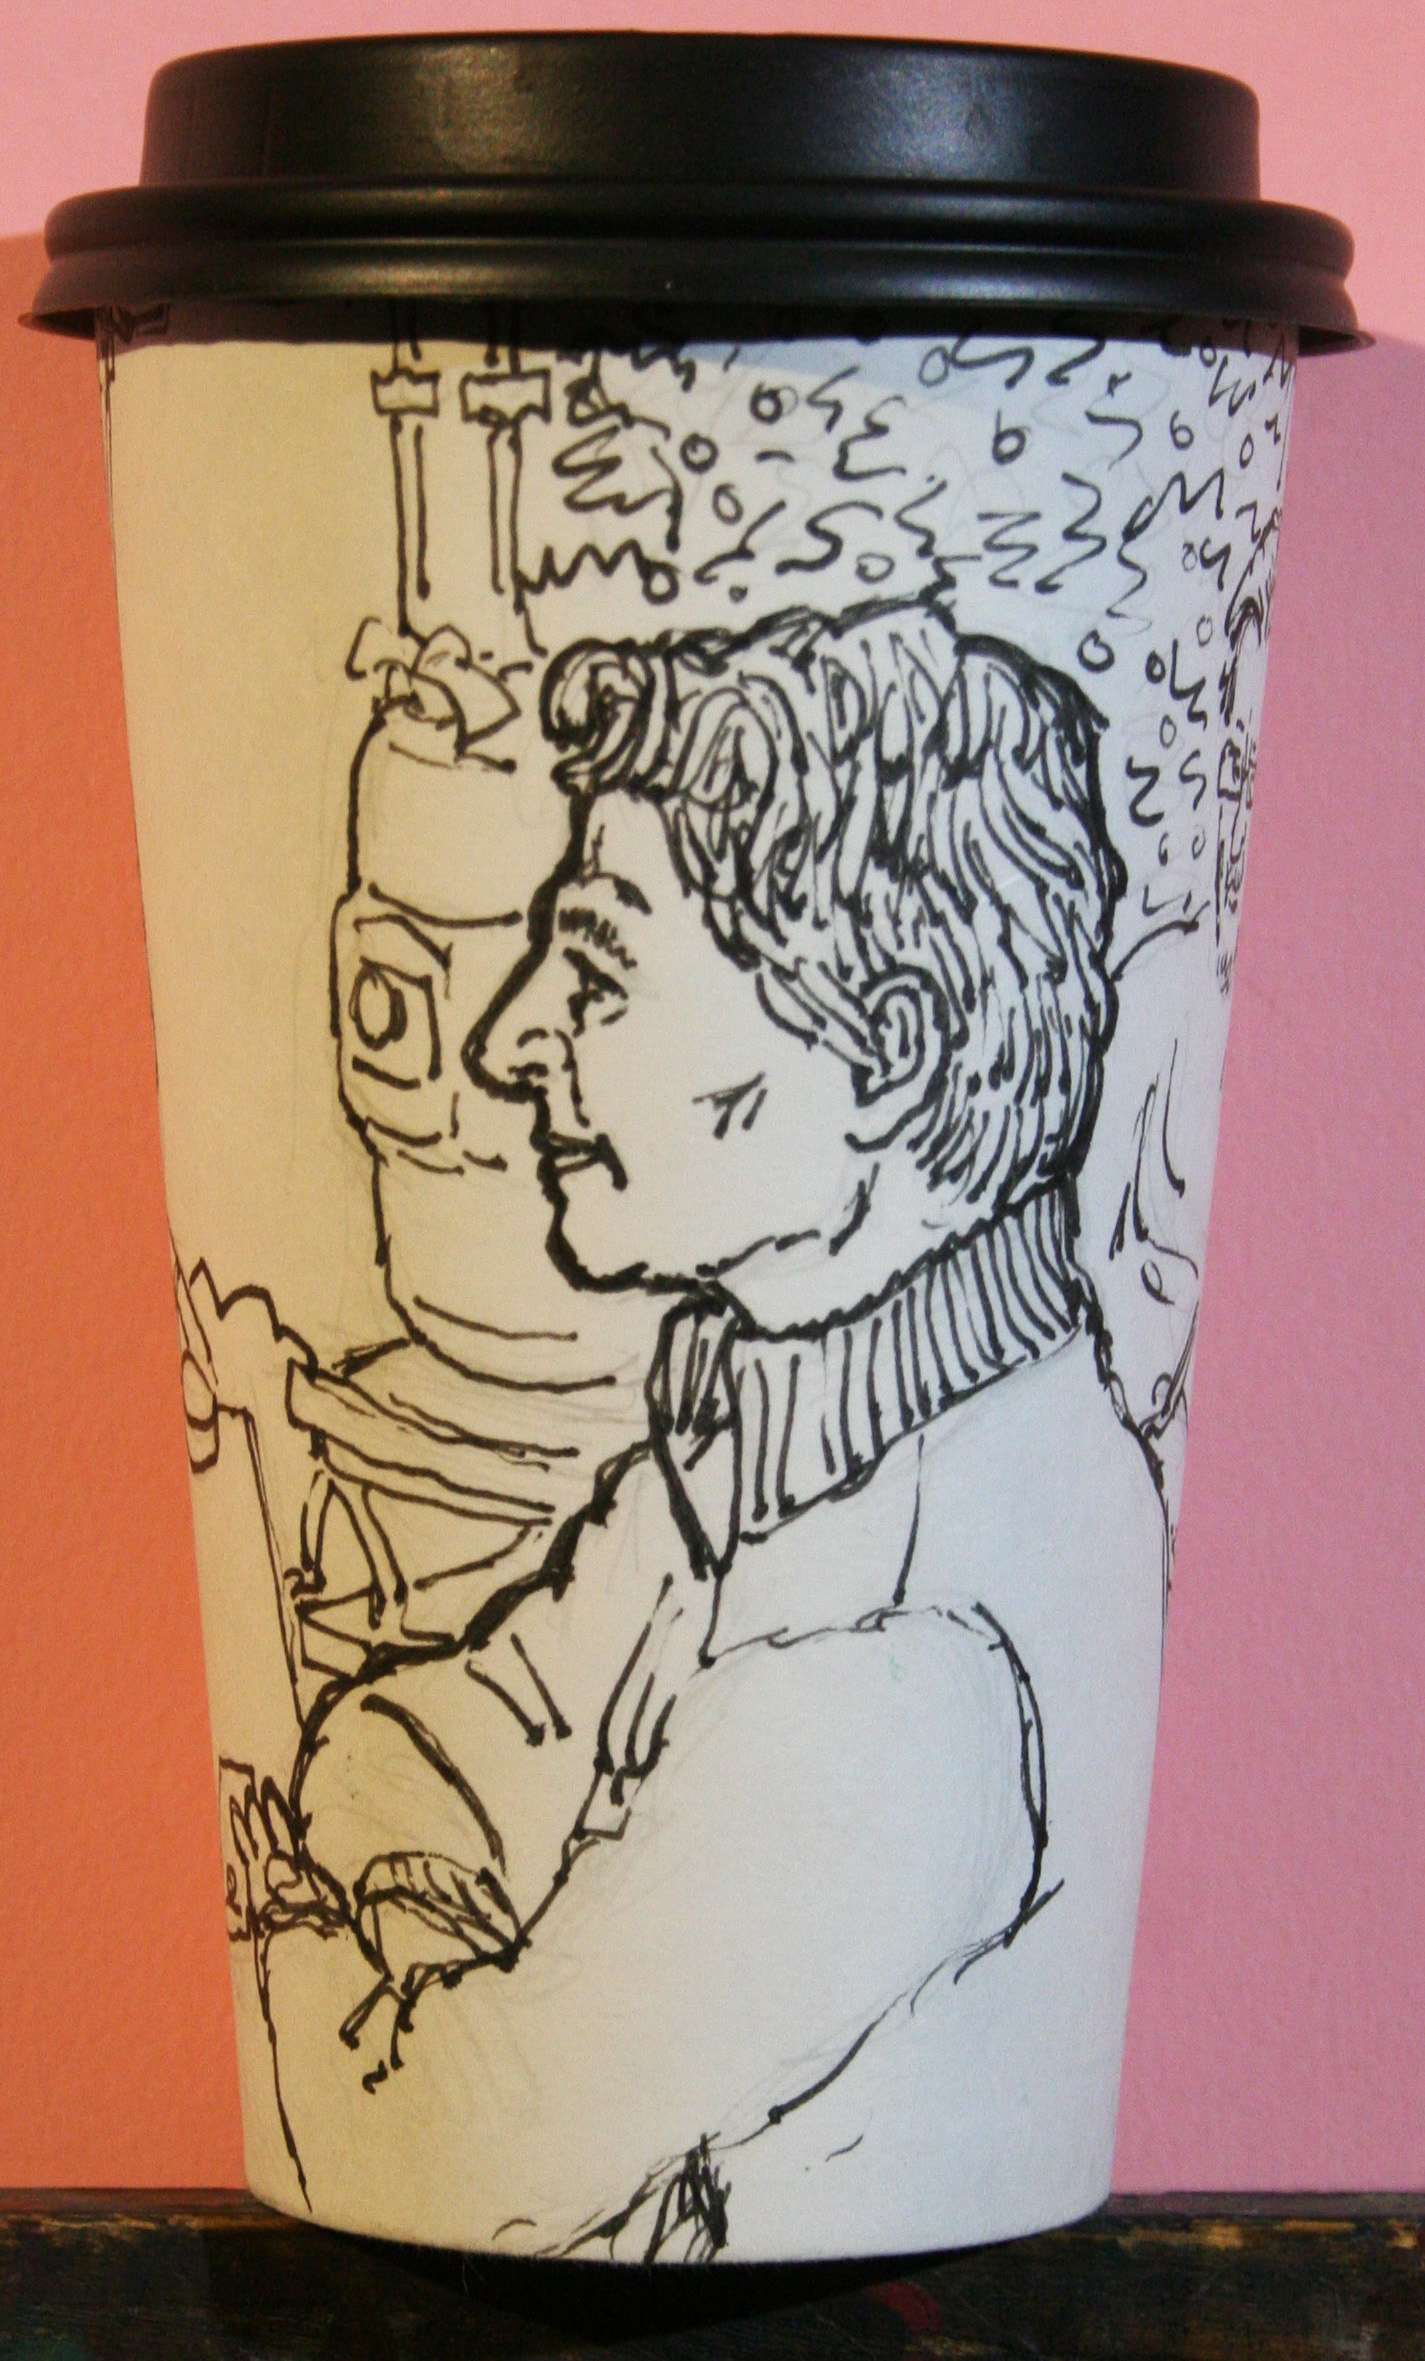 Jack Flotte did this coffee cup portrait.